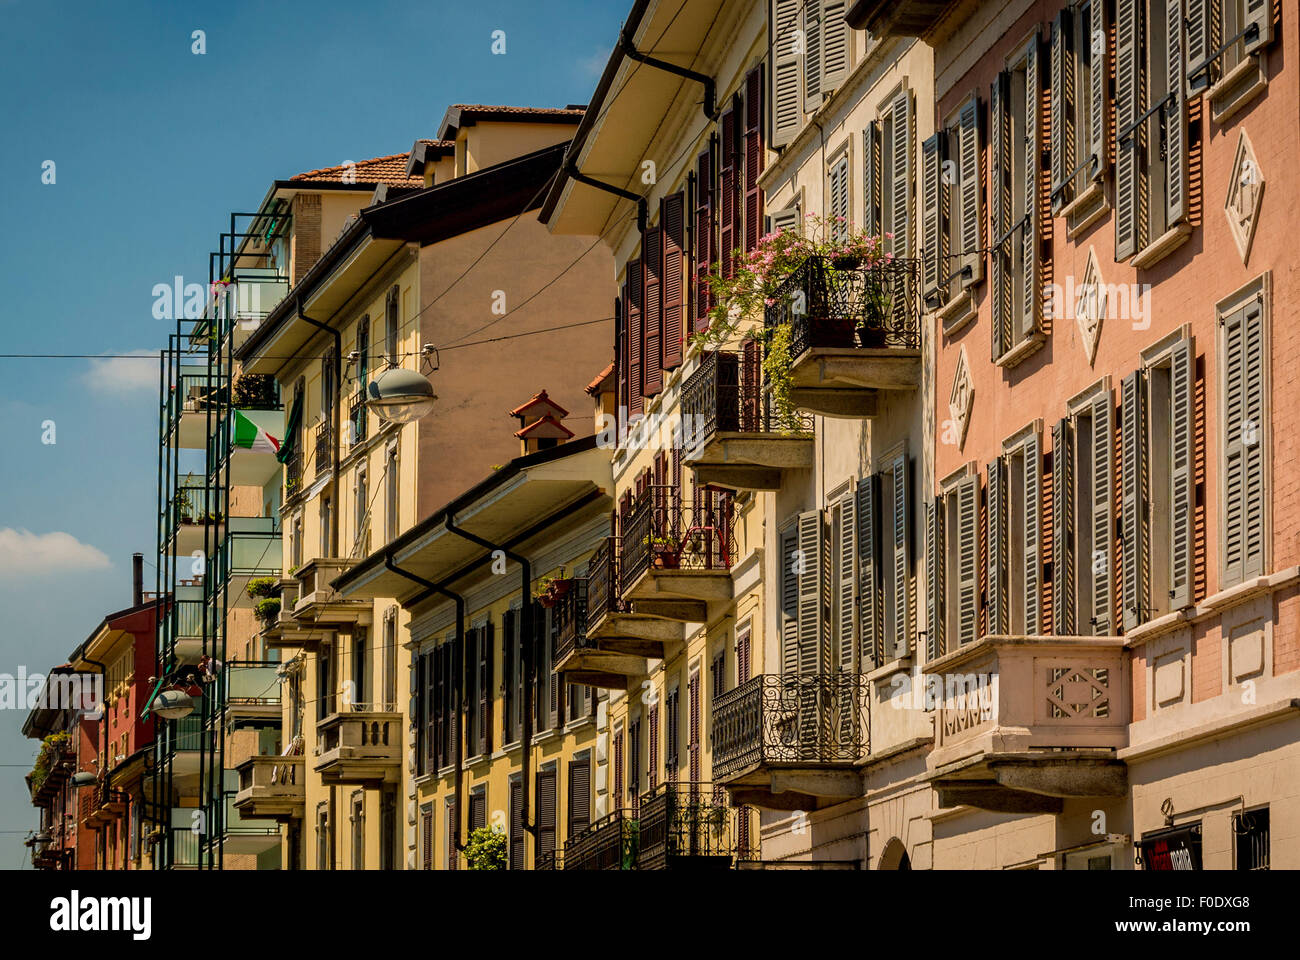 Buildings with wooden shuttered windows along the Grand Canal, Naviglio, Milan, Italy - Stock Image